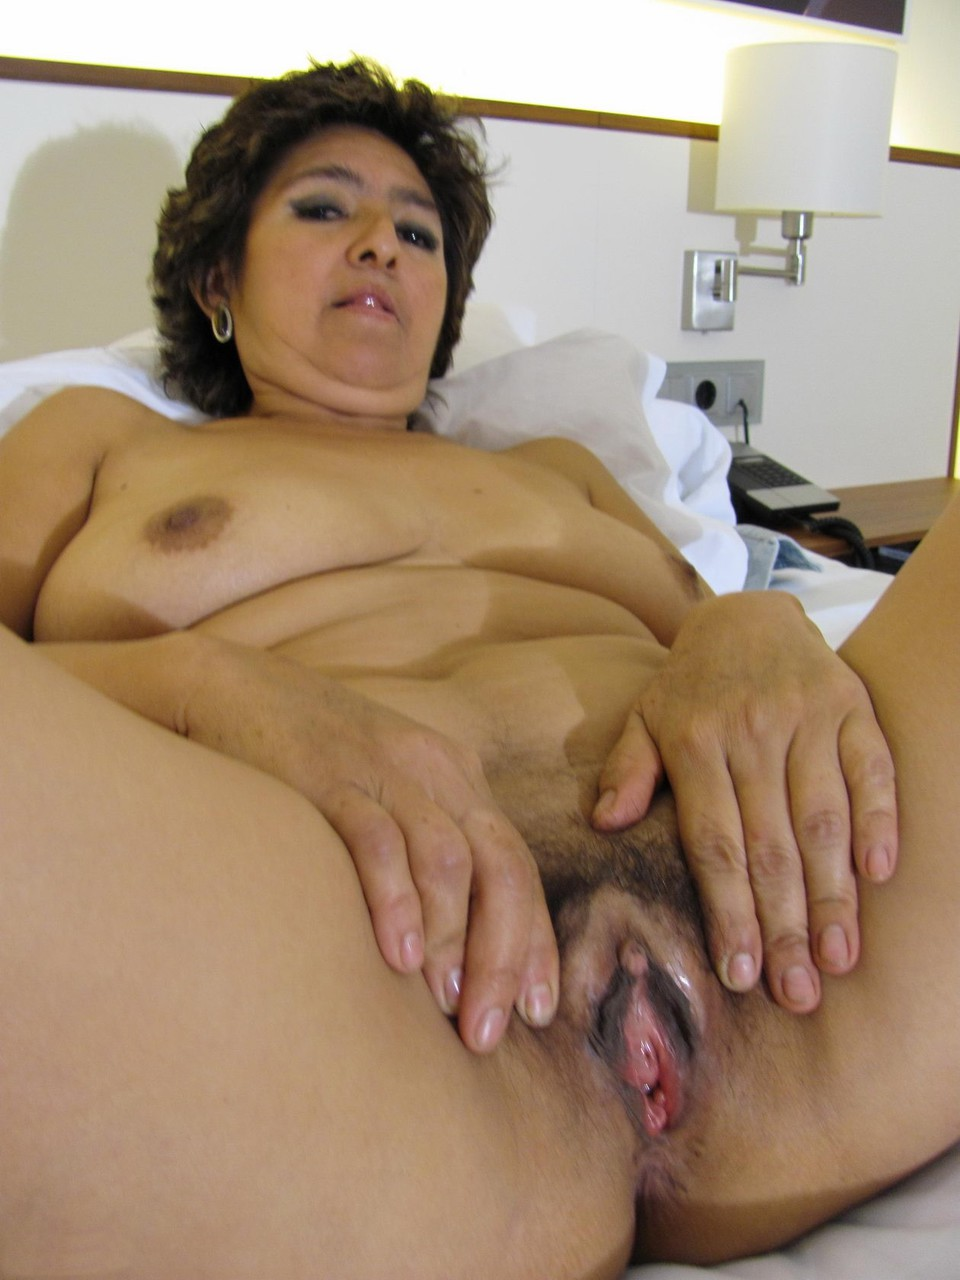 Anal mature mexican milf housewife